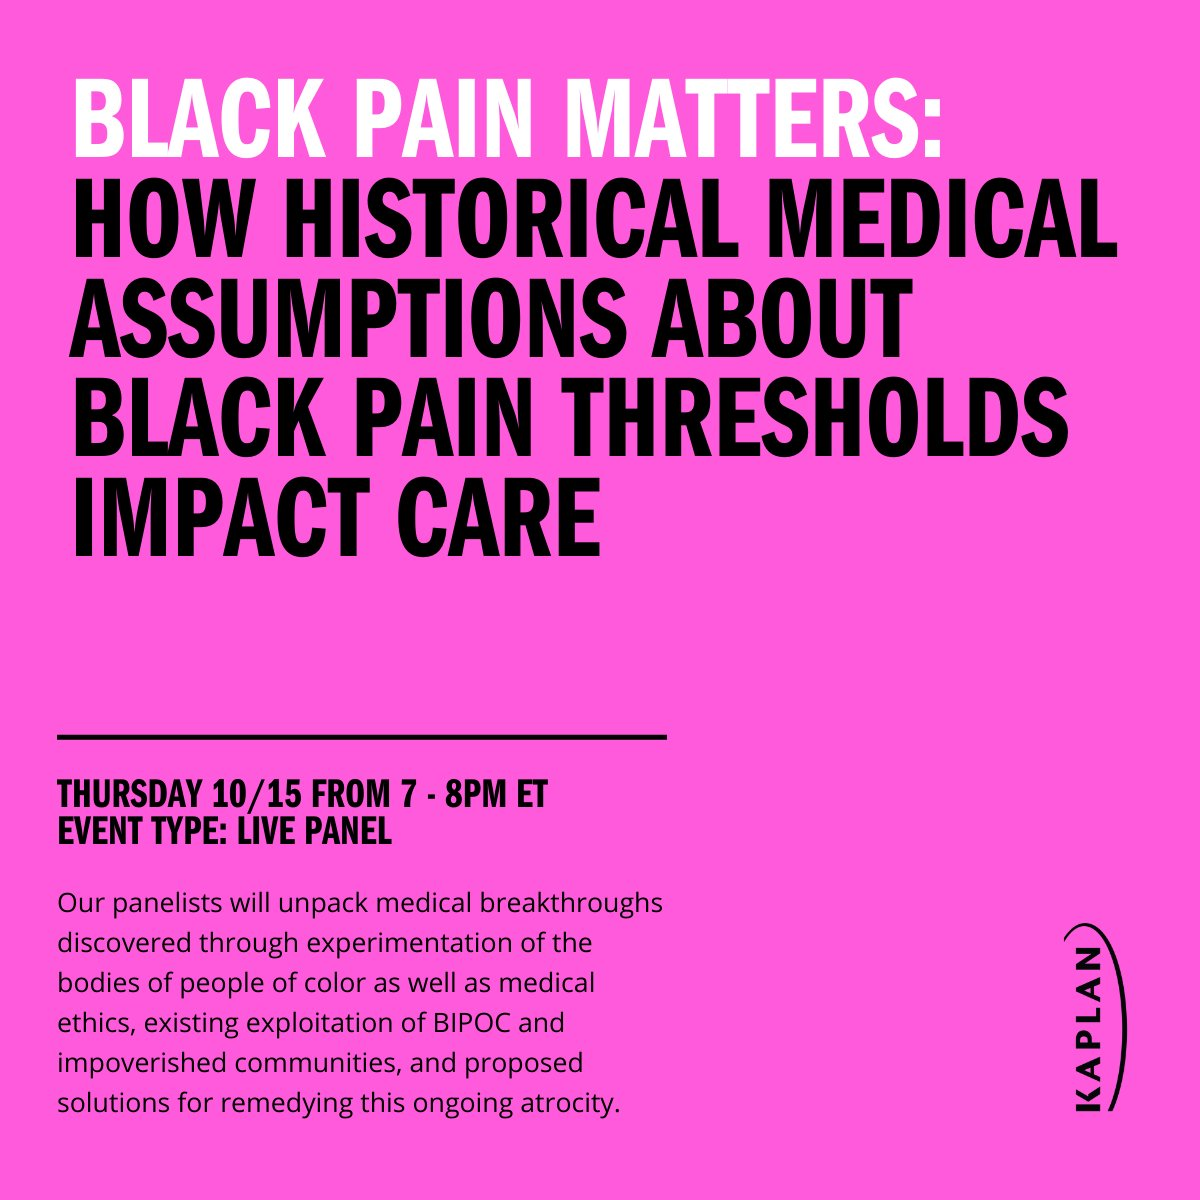 In this event, our panelists will address well documented racial disparities in treatment―including around COVID-19―and will take a close look at Black case studies that can and should be included in medical curricula. Join us tomorrow and register here: https://t.co/EDXoZMWf6y https://t.co/zW74VQuFE6